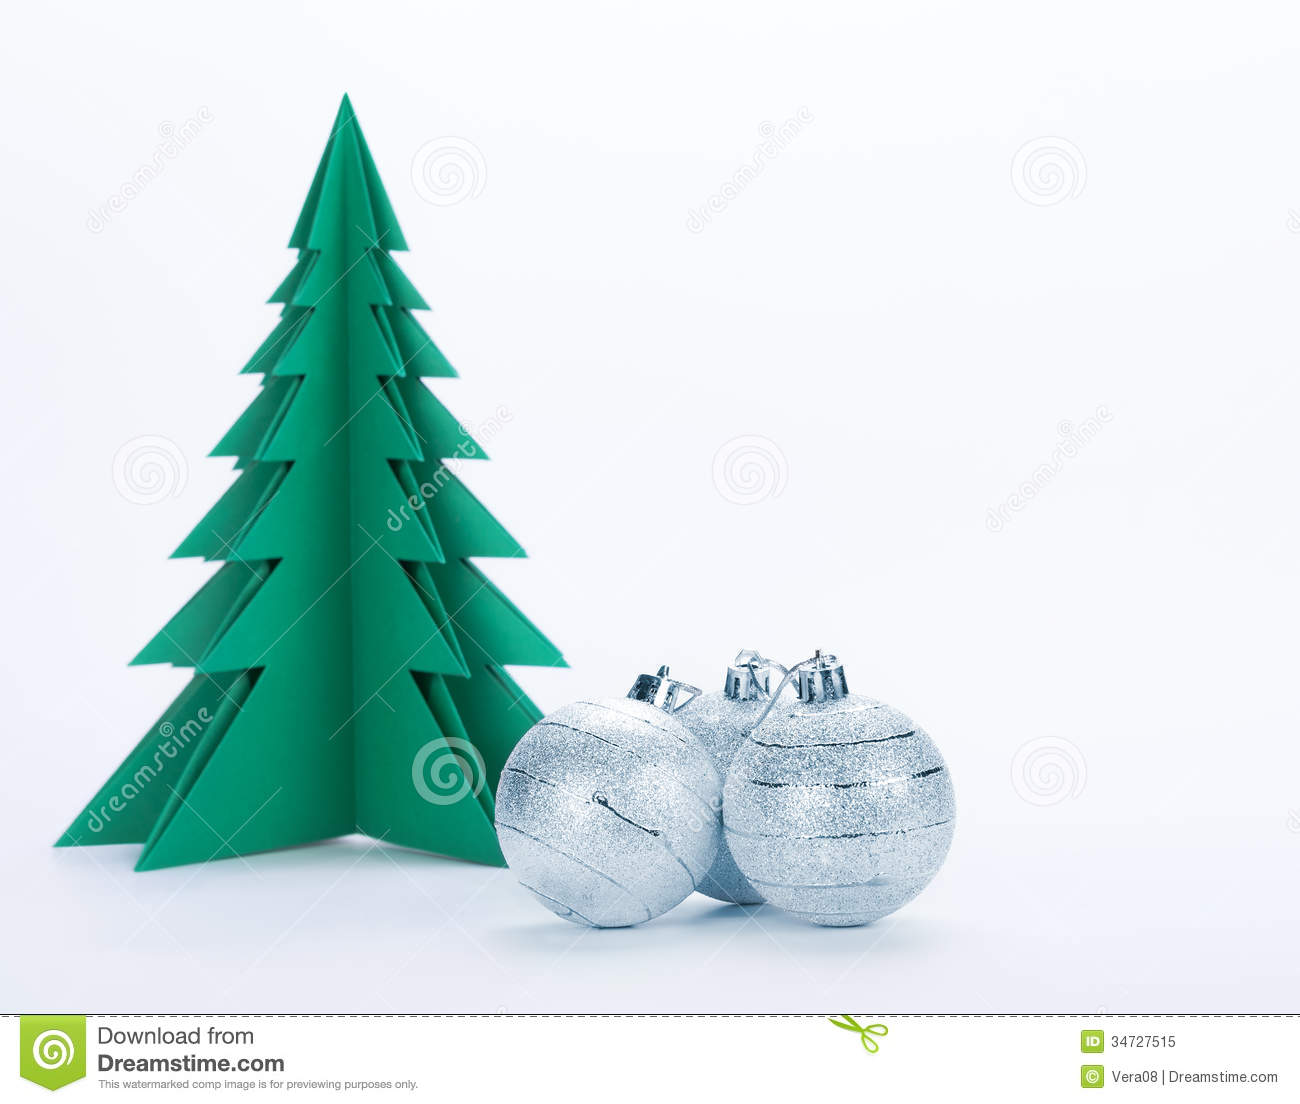 christmas decorations and green paper tree on a white background - Old Fashioned Paper Christmas Decorations